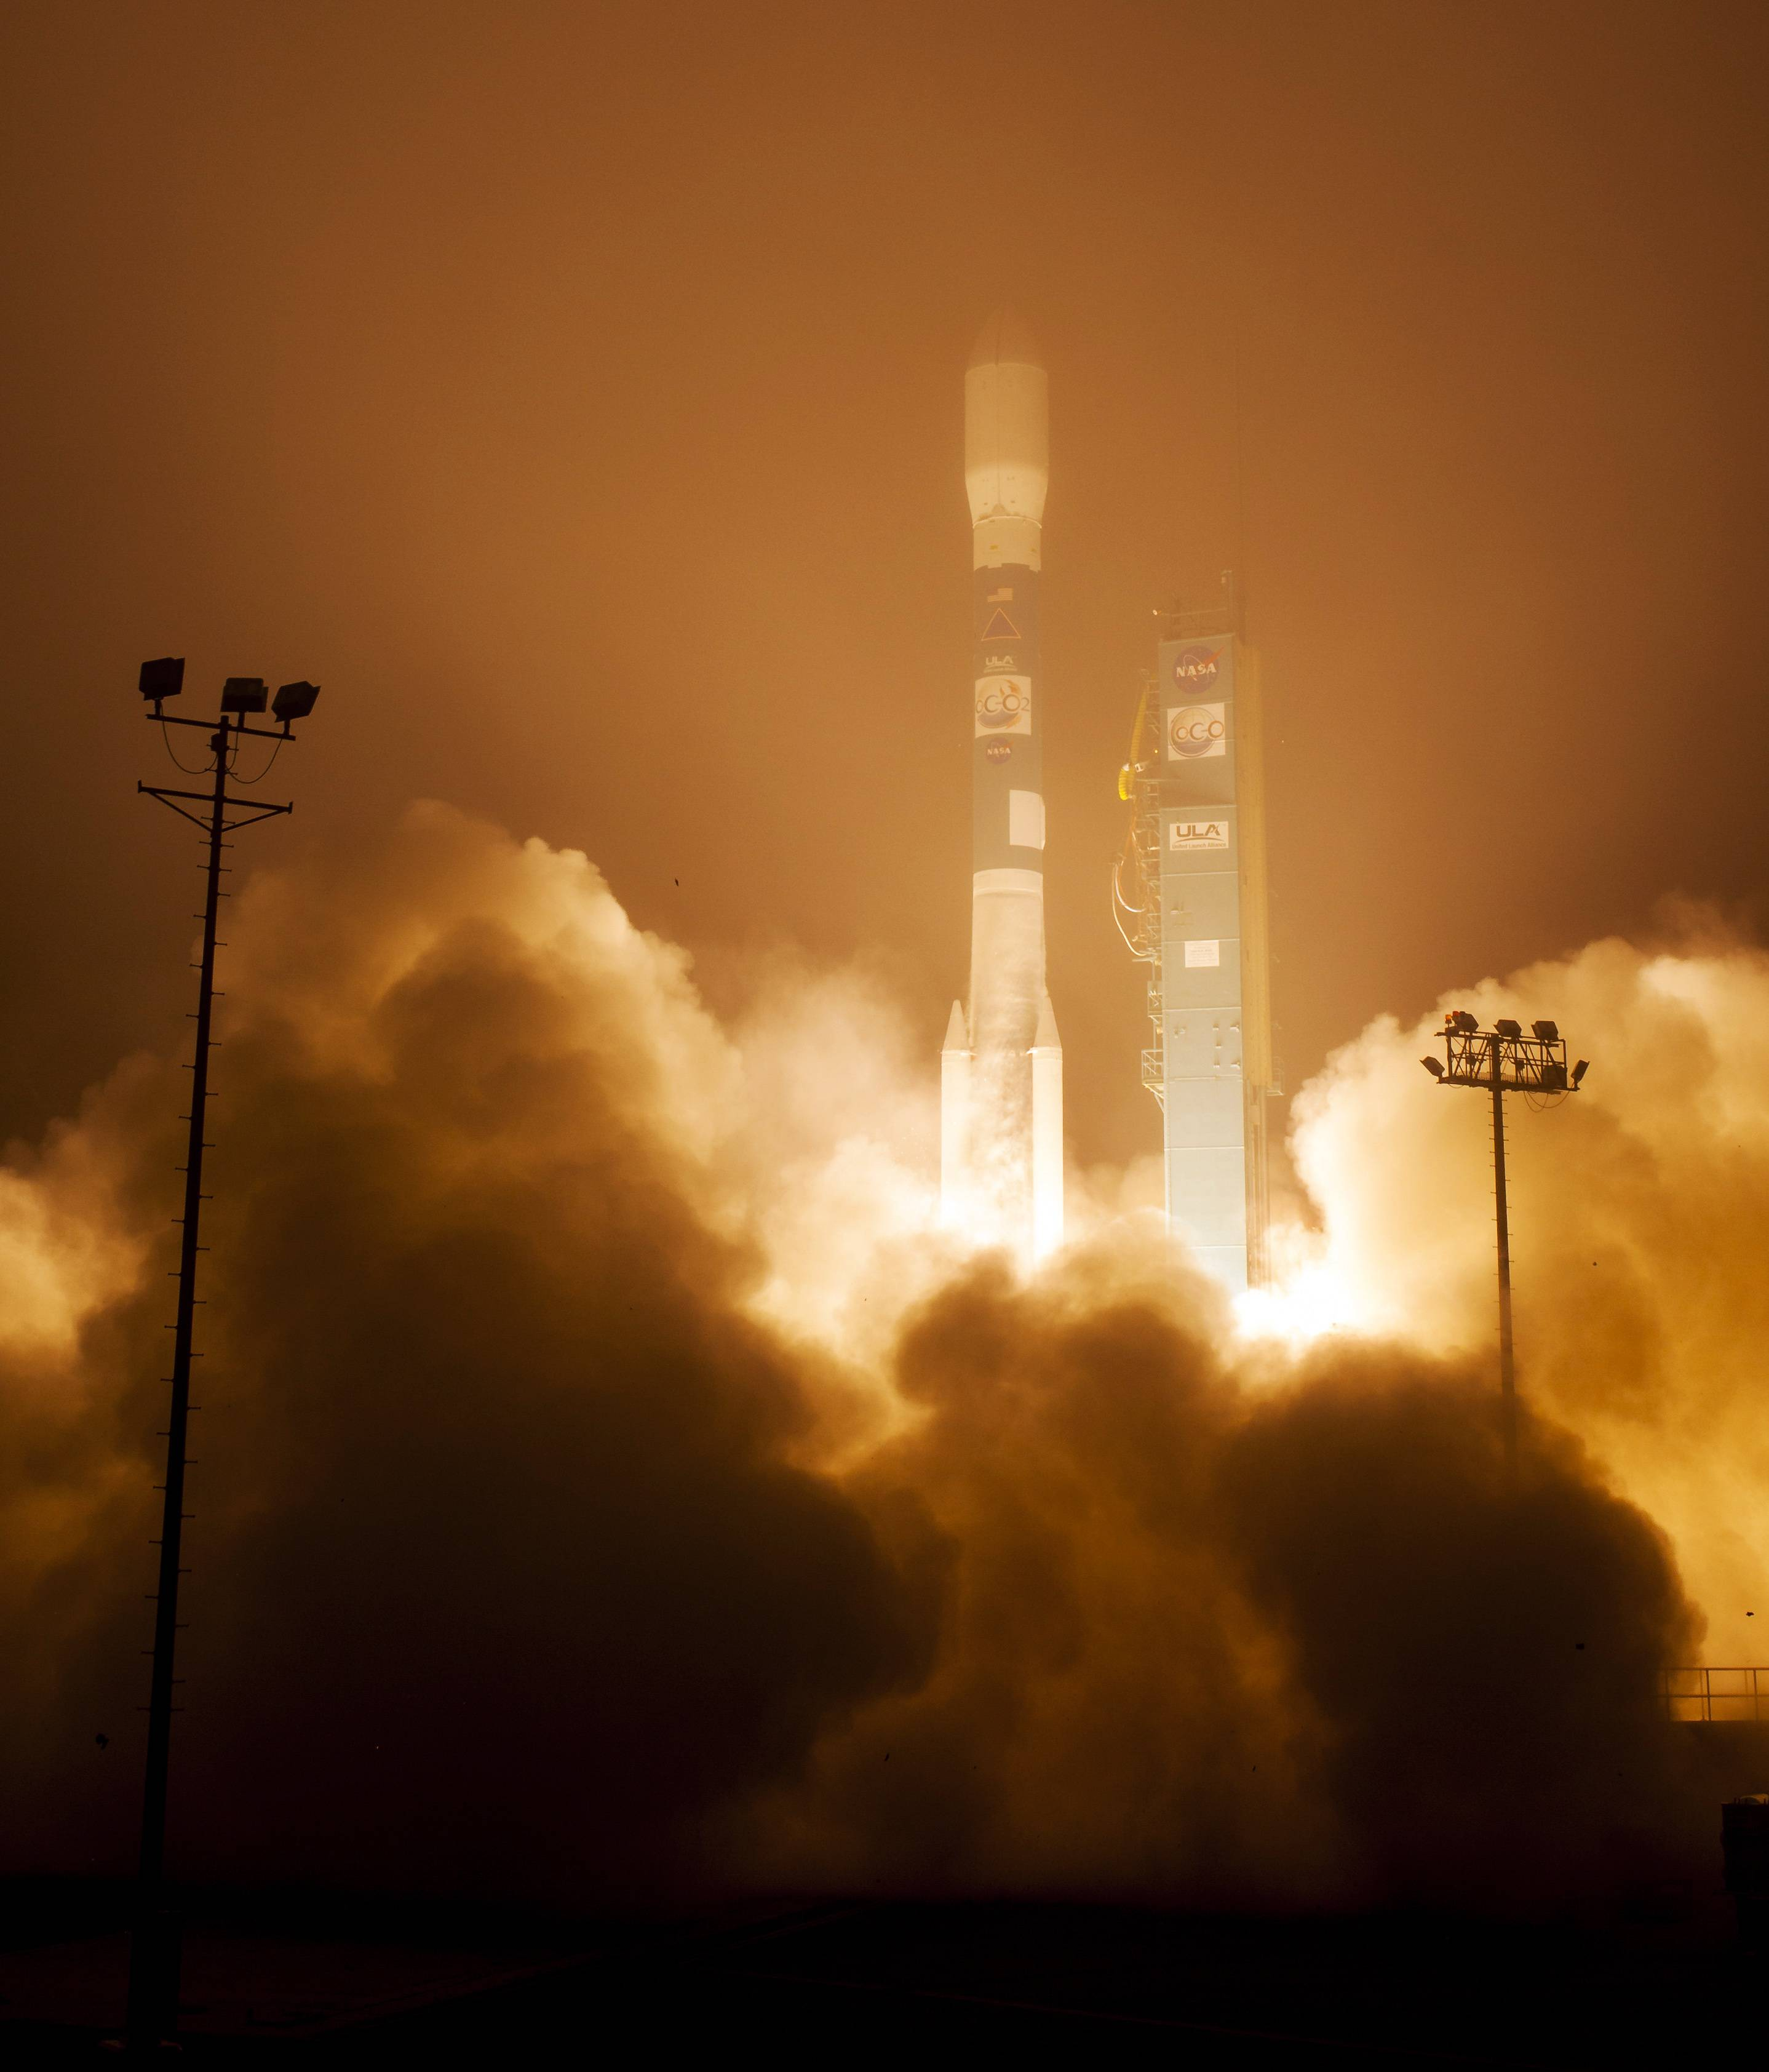 A Delta 2 rocket with the Orbiting Carbon Observatory-2 satellite launches at Vandenberg Air Force Base, Calif., Wednesday morning, July 2, 2014. The goal of the $468 million mission, designed to last at least two years, is to study the processes behind how the environment absorbs carbon dioxide.